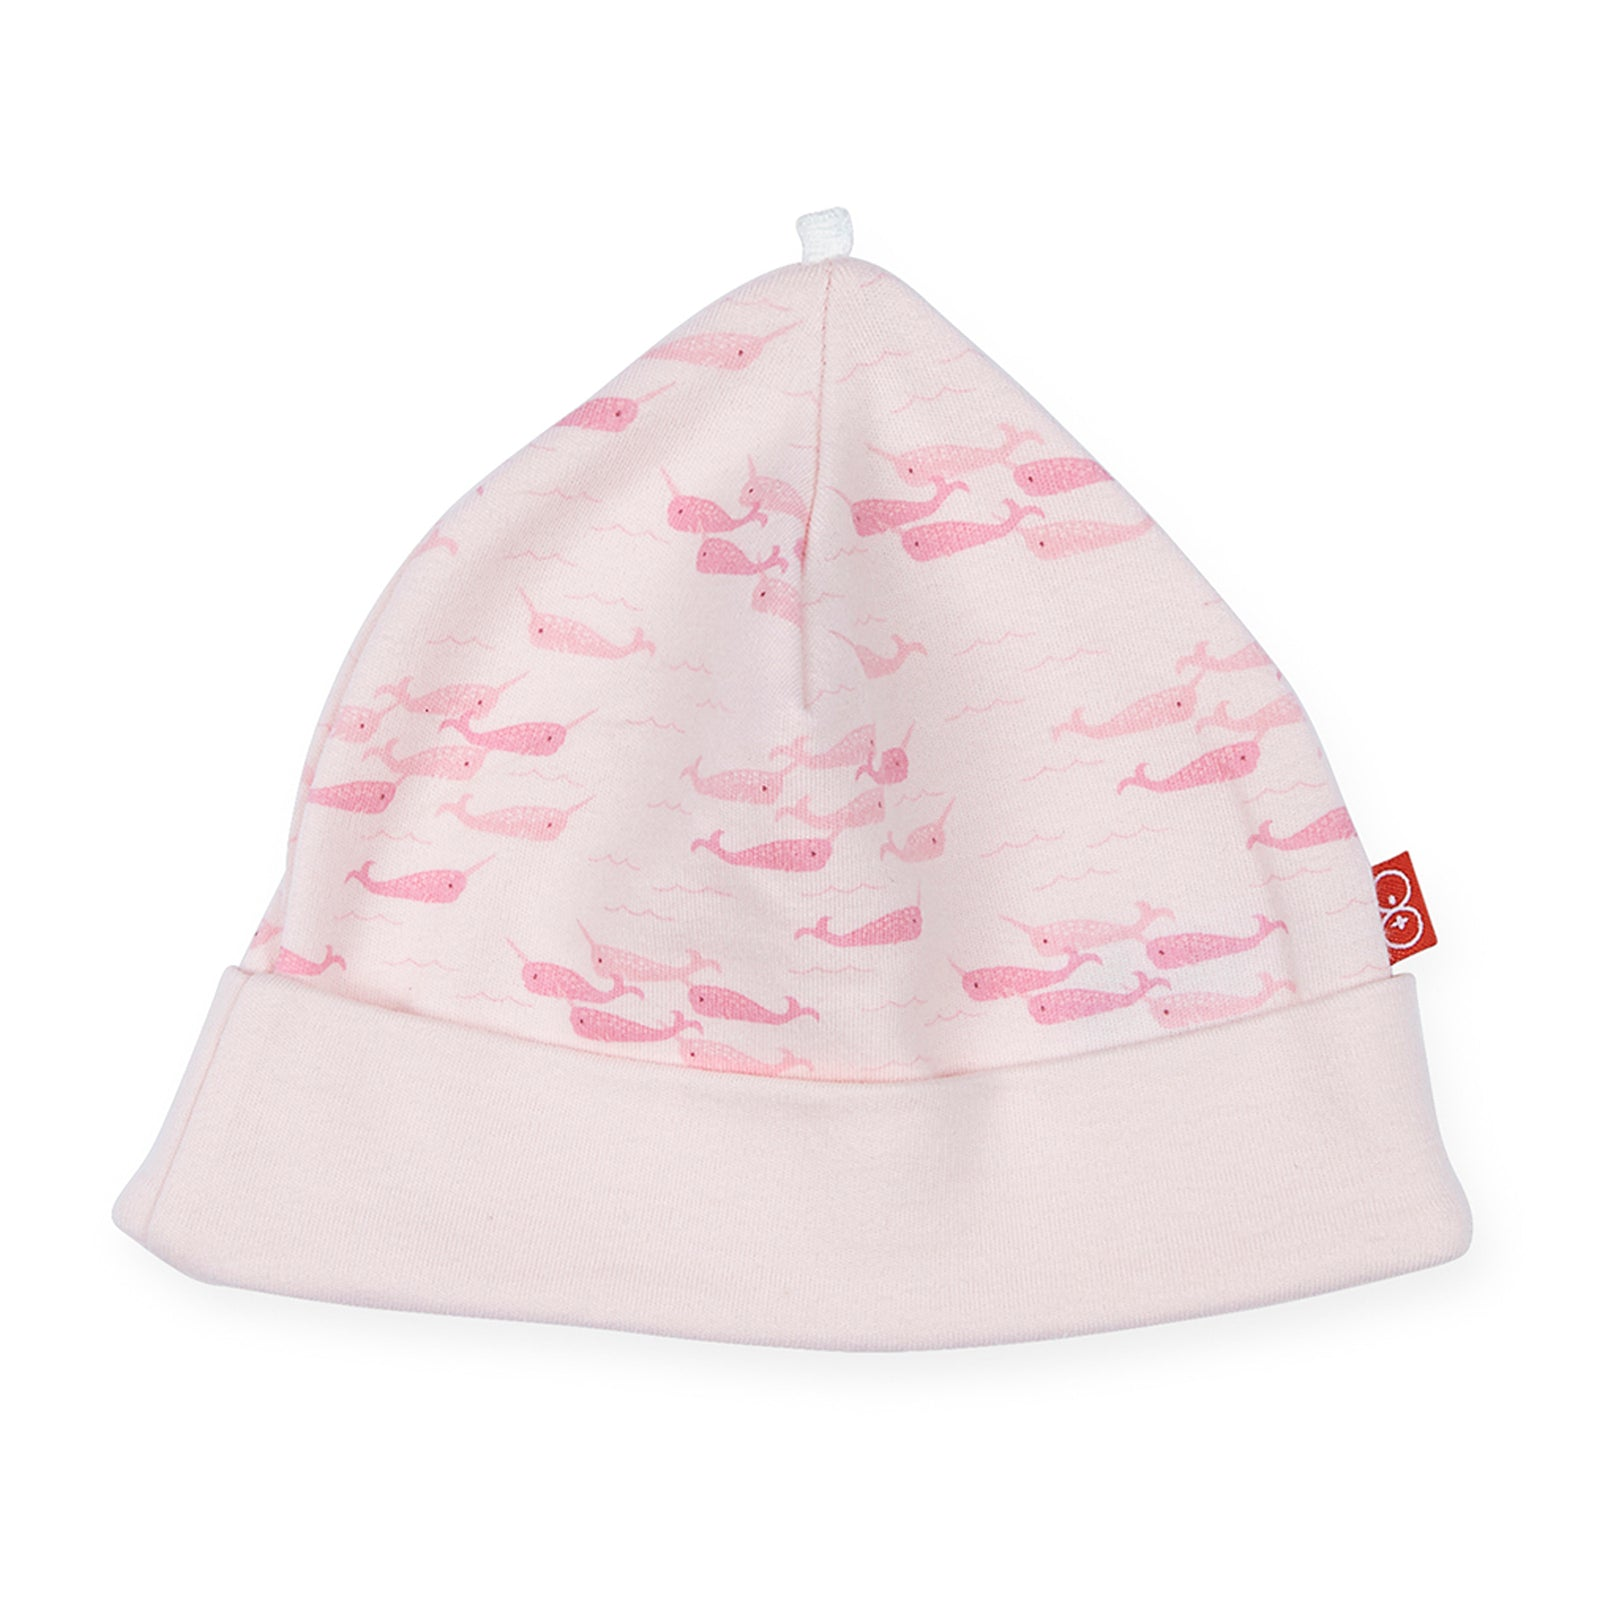 8ecf5c6e4c4 Magnetic Me Pink Narwhals Cotton Hat